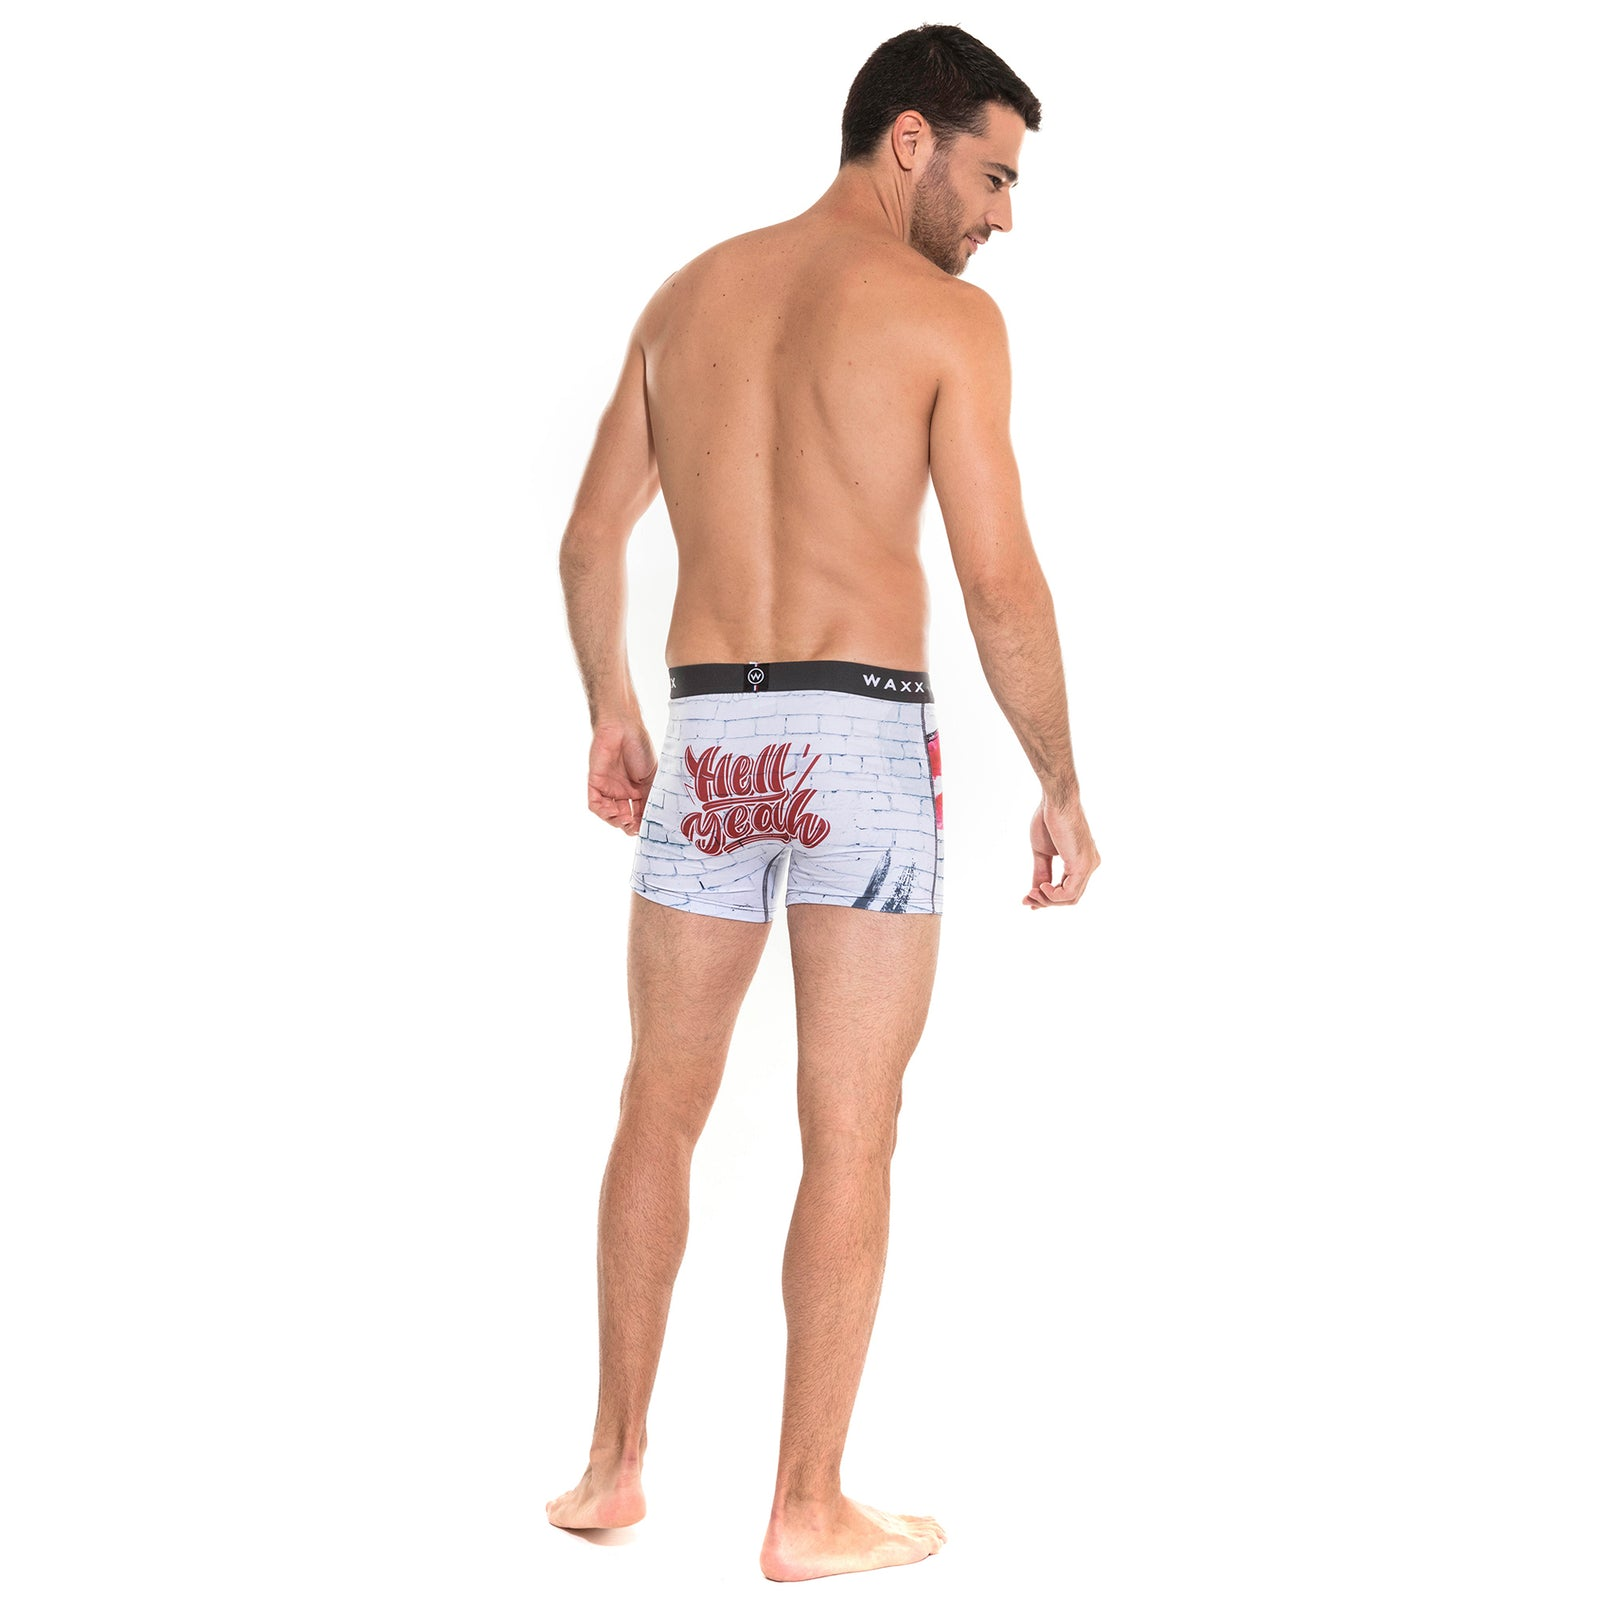 Waxx Men's Trunk Boxer Short Kiss